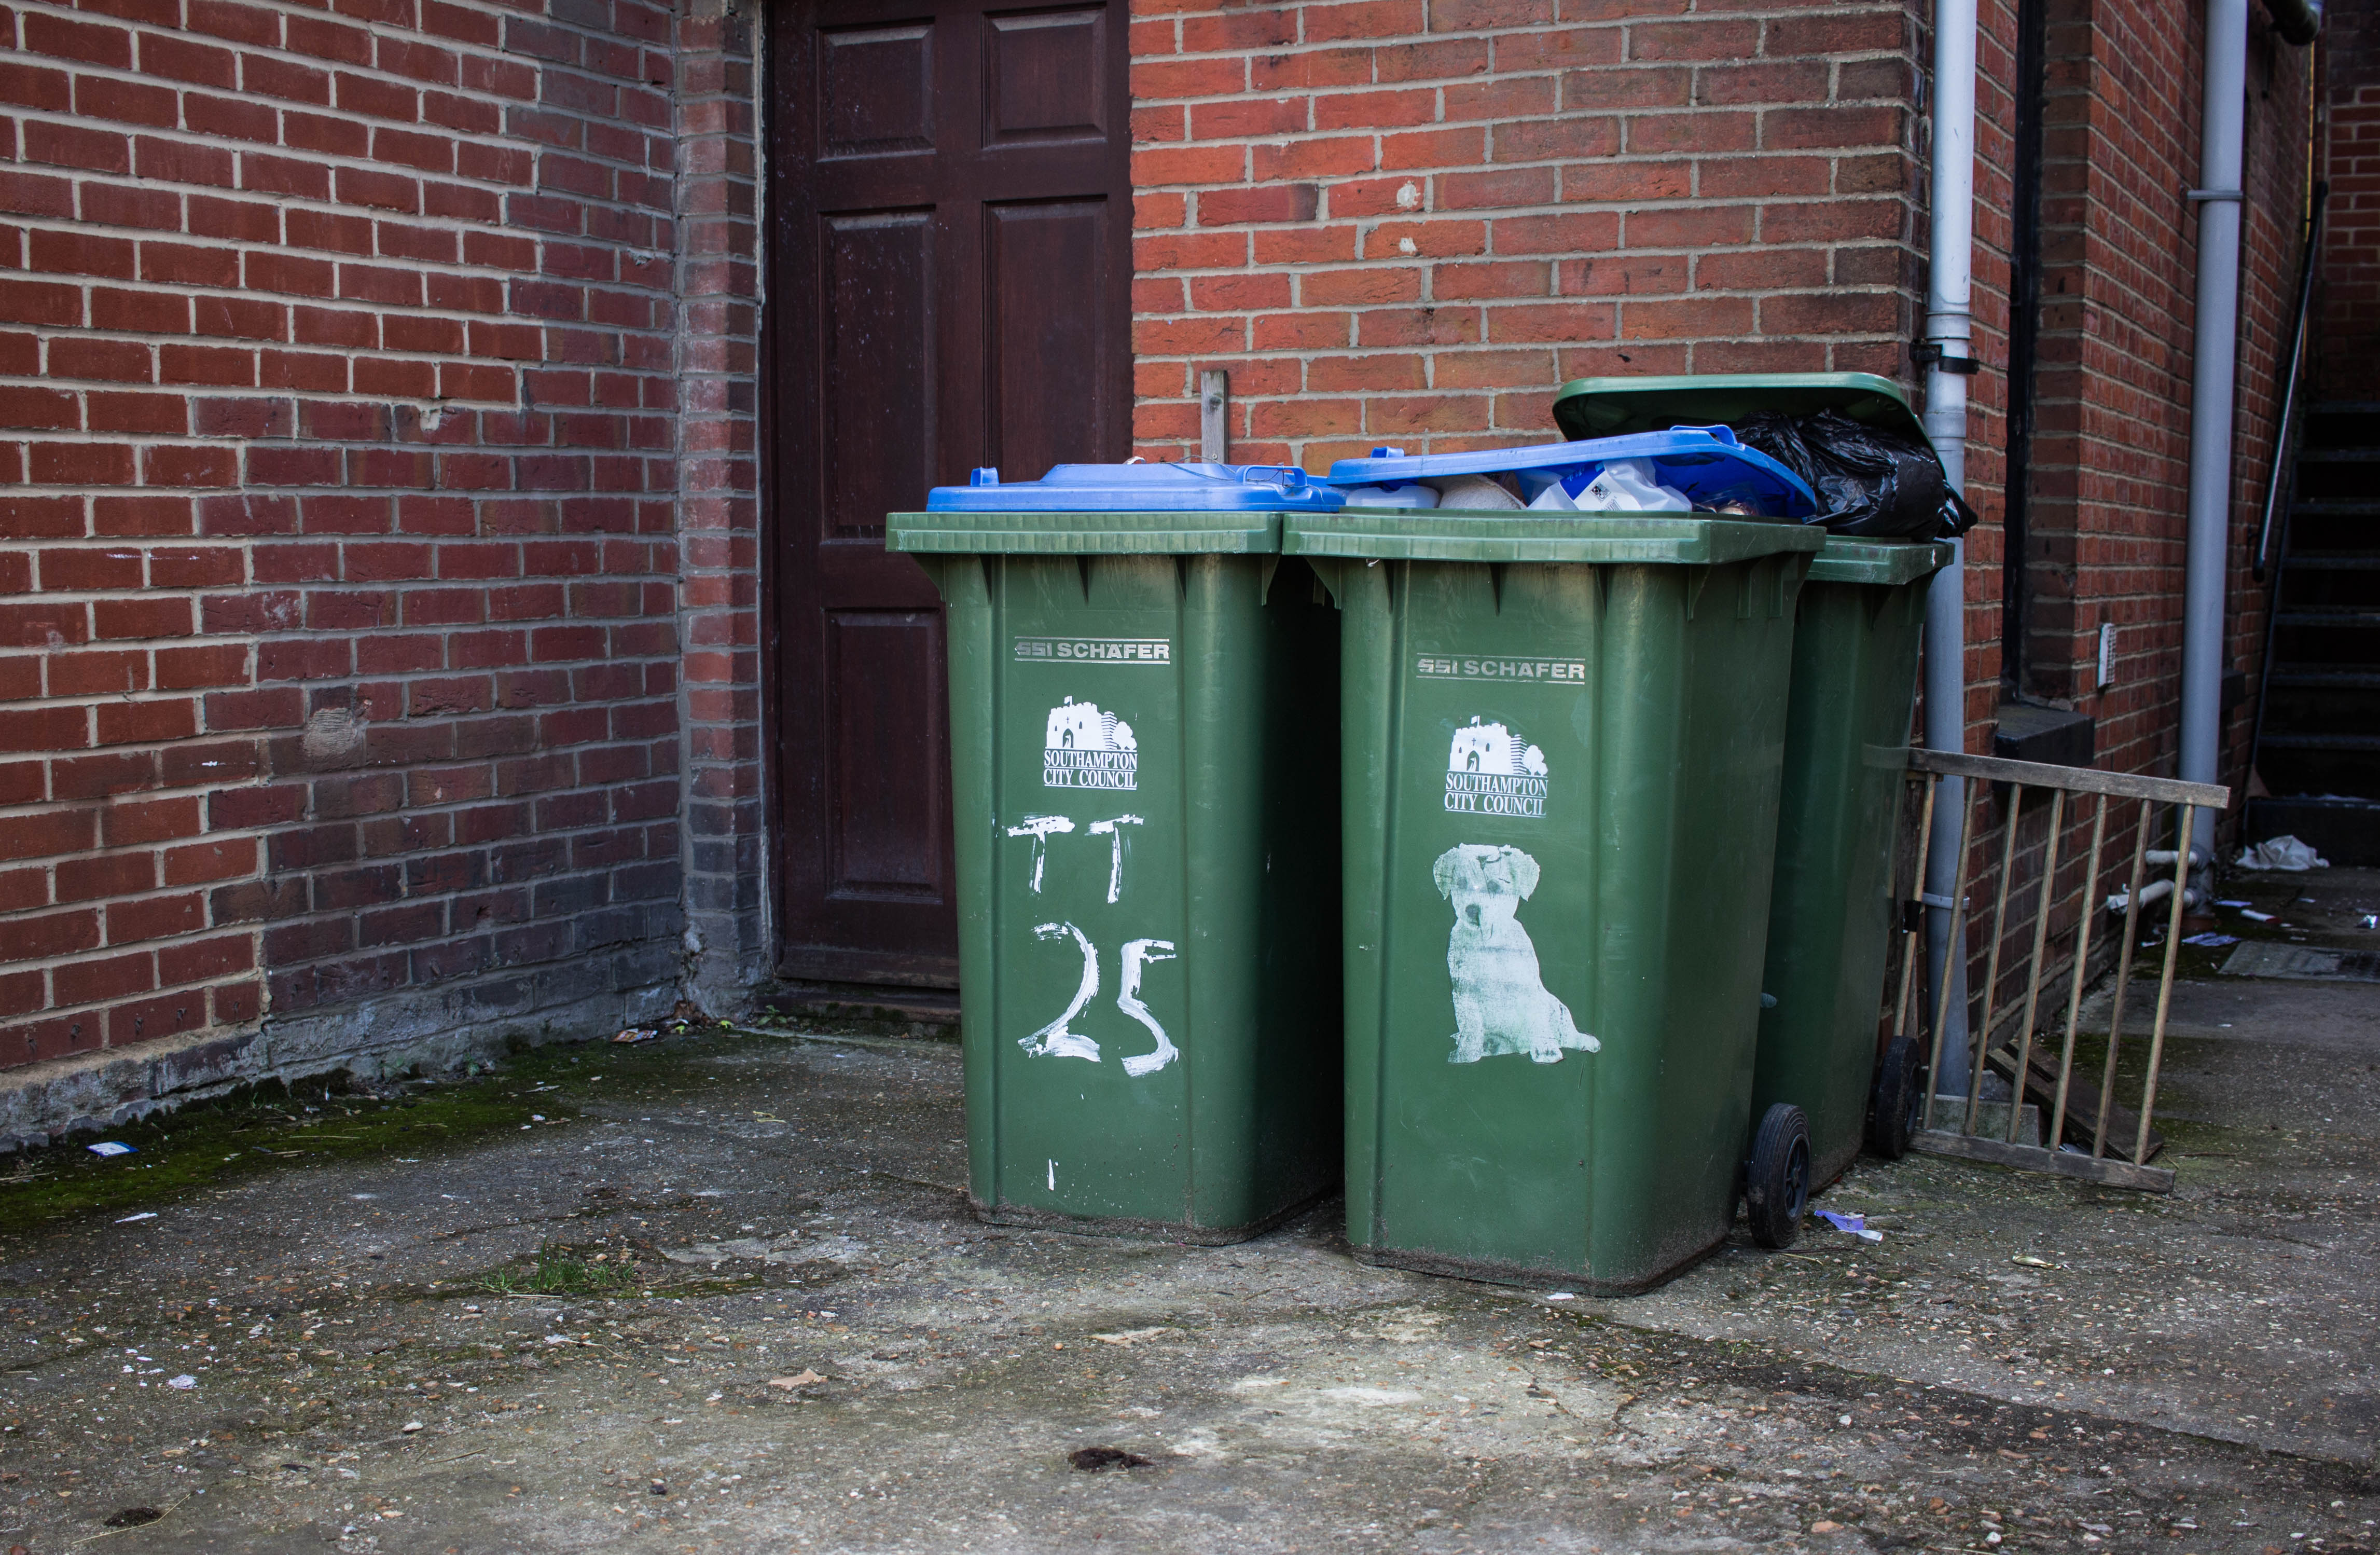 From 2015 to 2016, England saw an increase in the percentage of materials recycled.